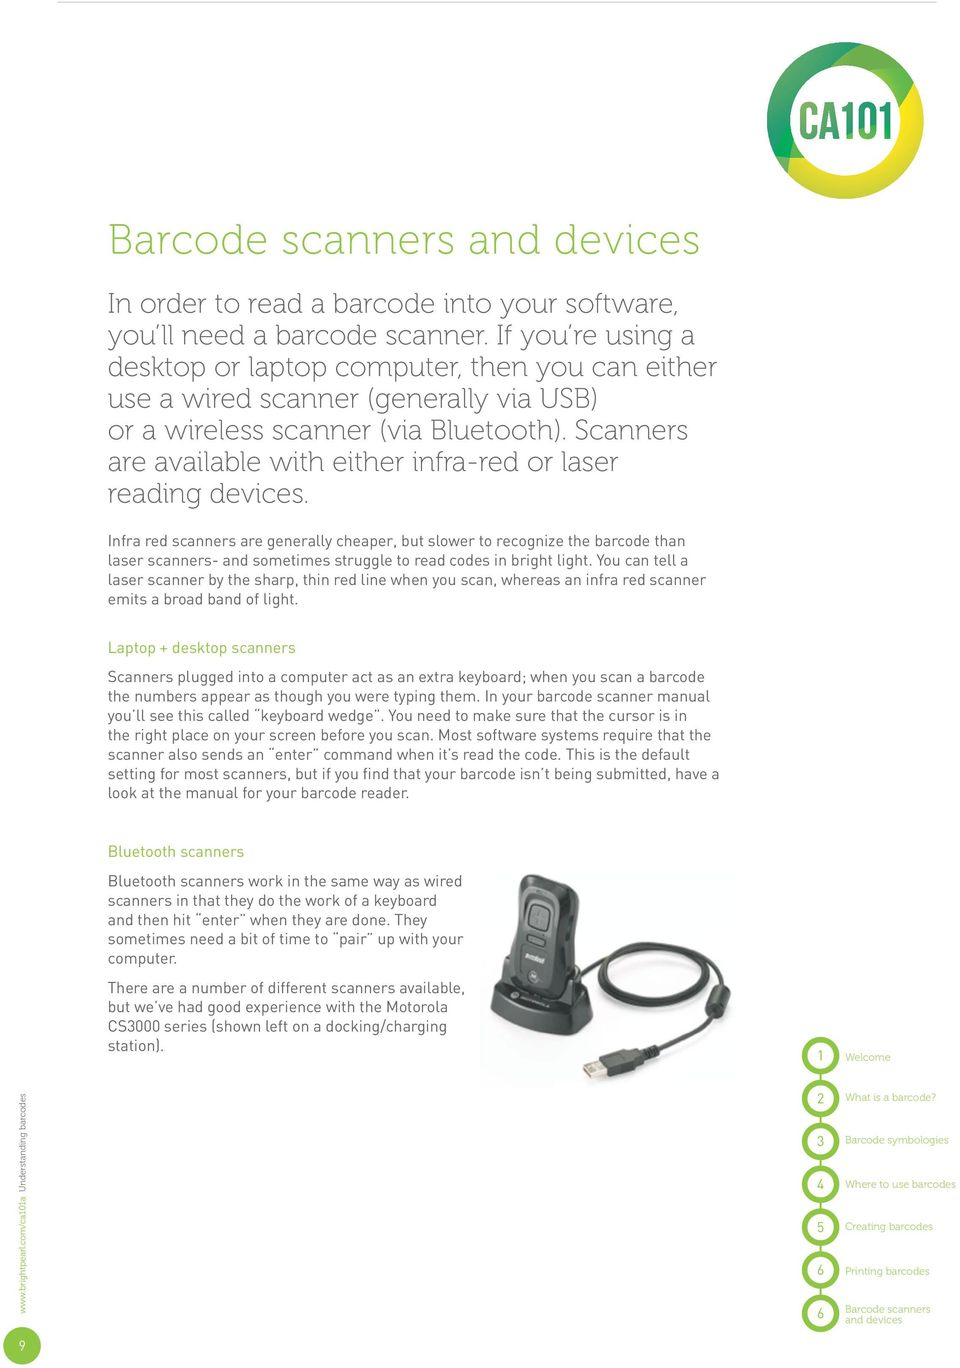 Scanners are available with either infra-red or laser reading devices.